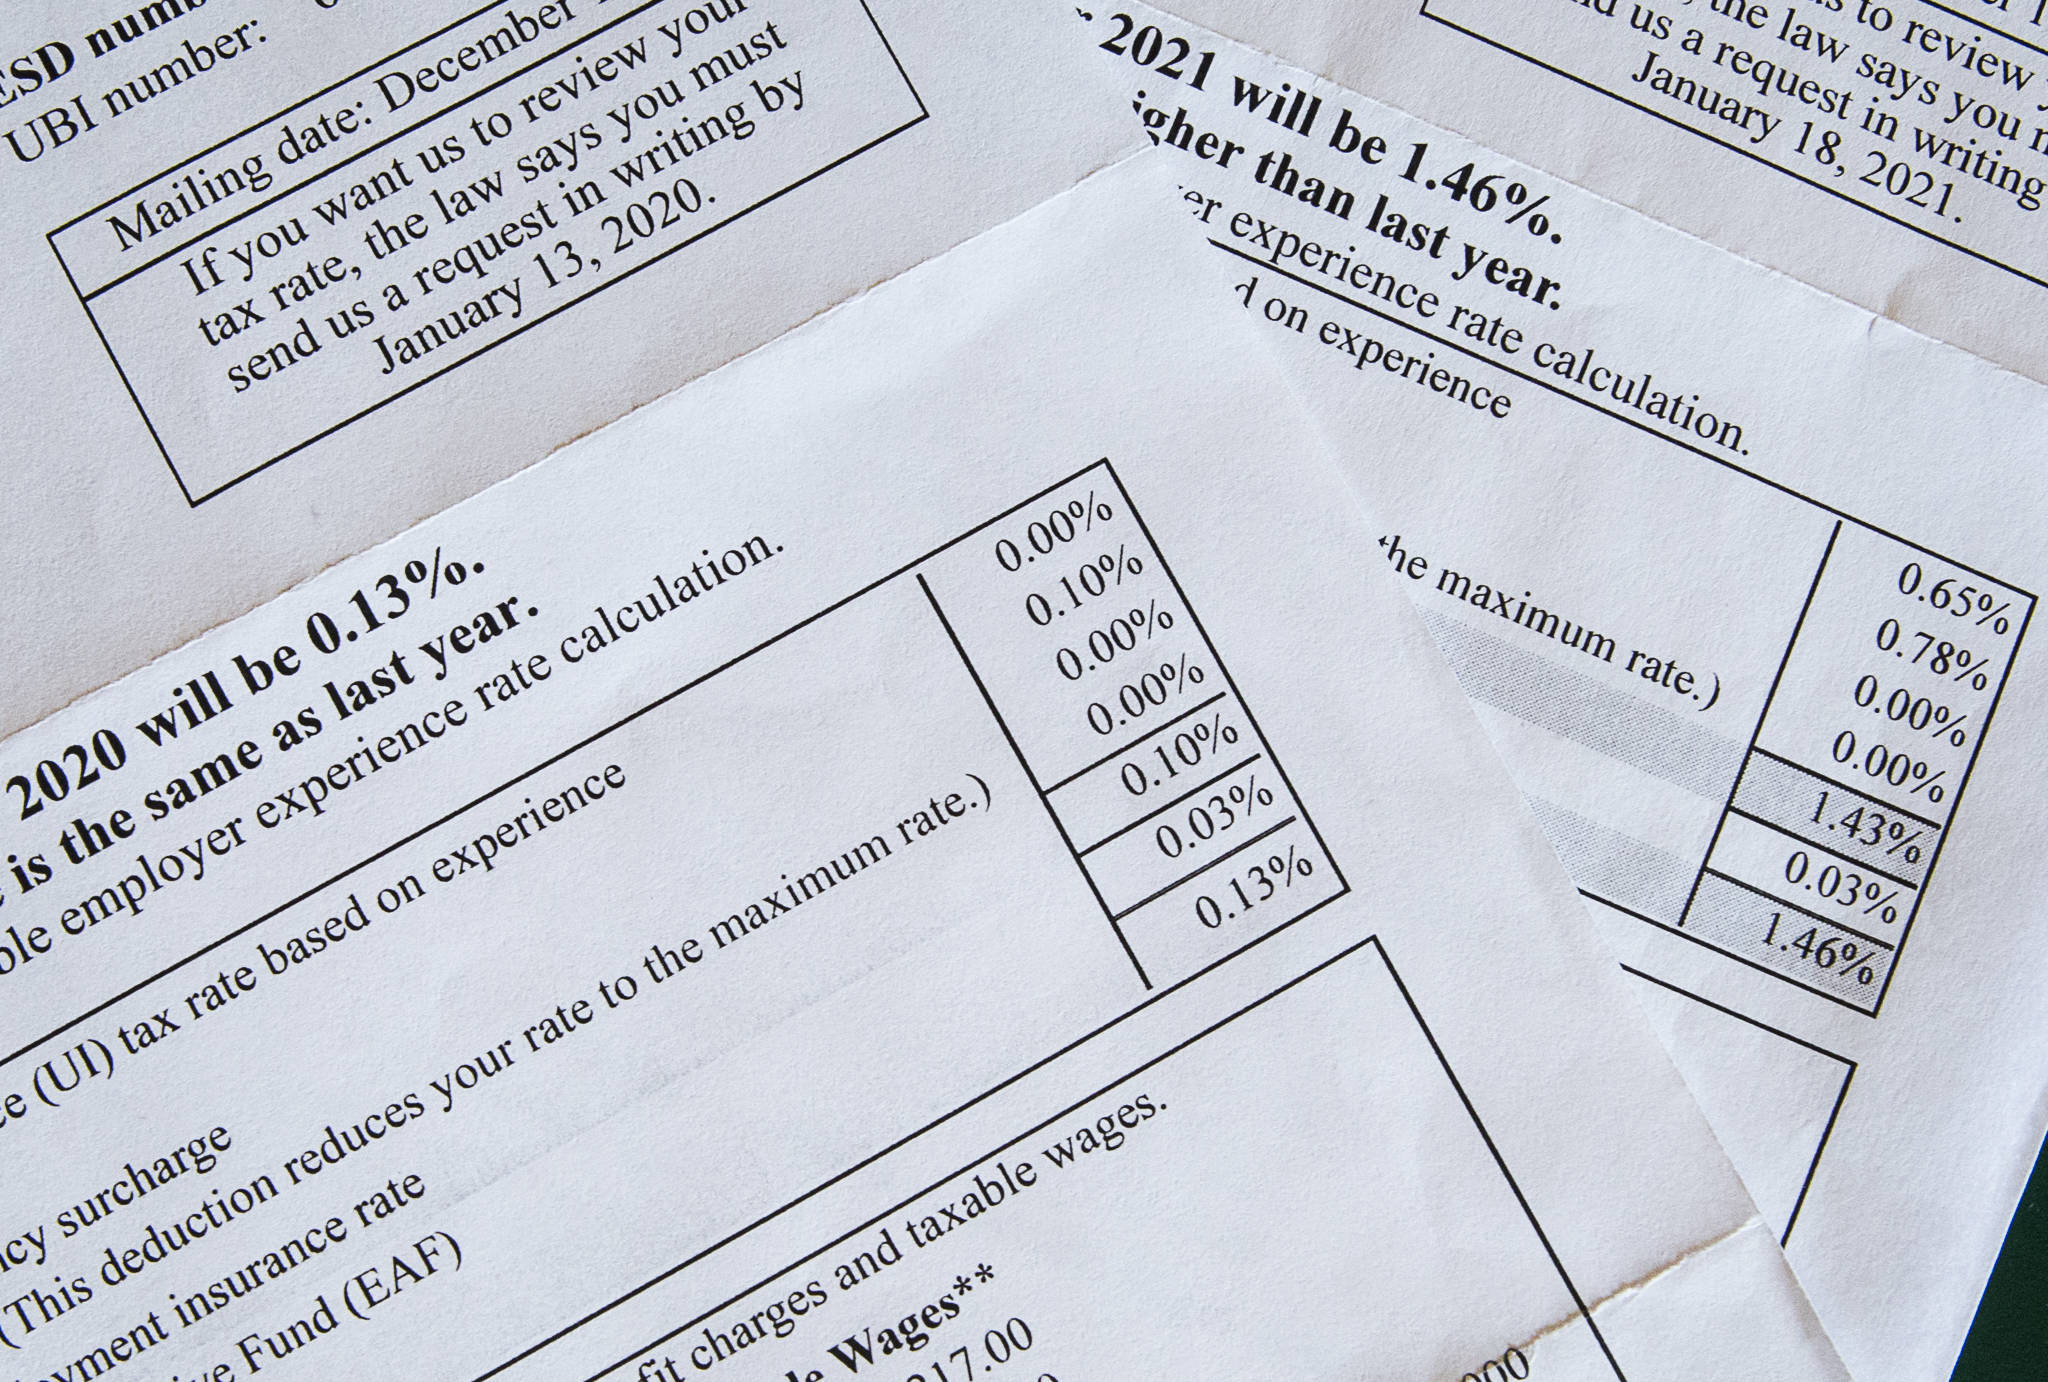 Statements from 2020 and 2021 showing a 1,000% increase in Brian Copple's unemployment insurance taxes. (Olivia Vanni / The Herald)